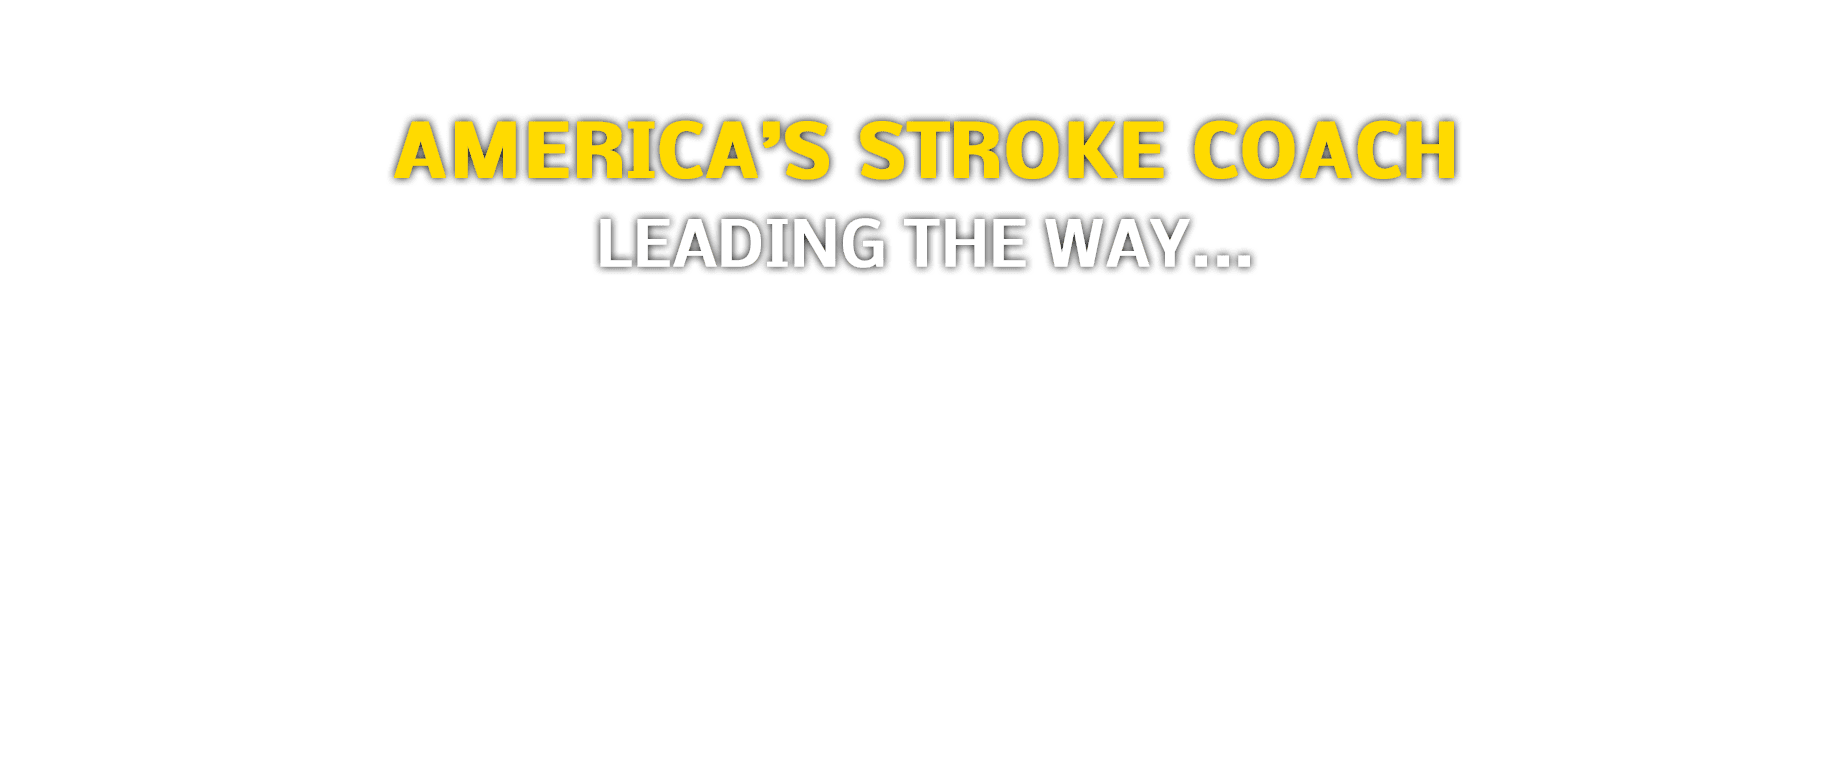 American's Stroke Coach banner Text